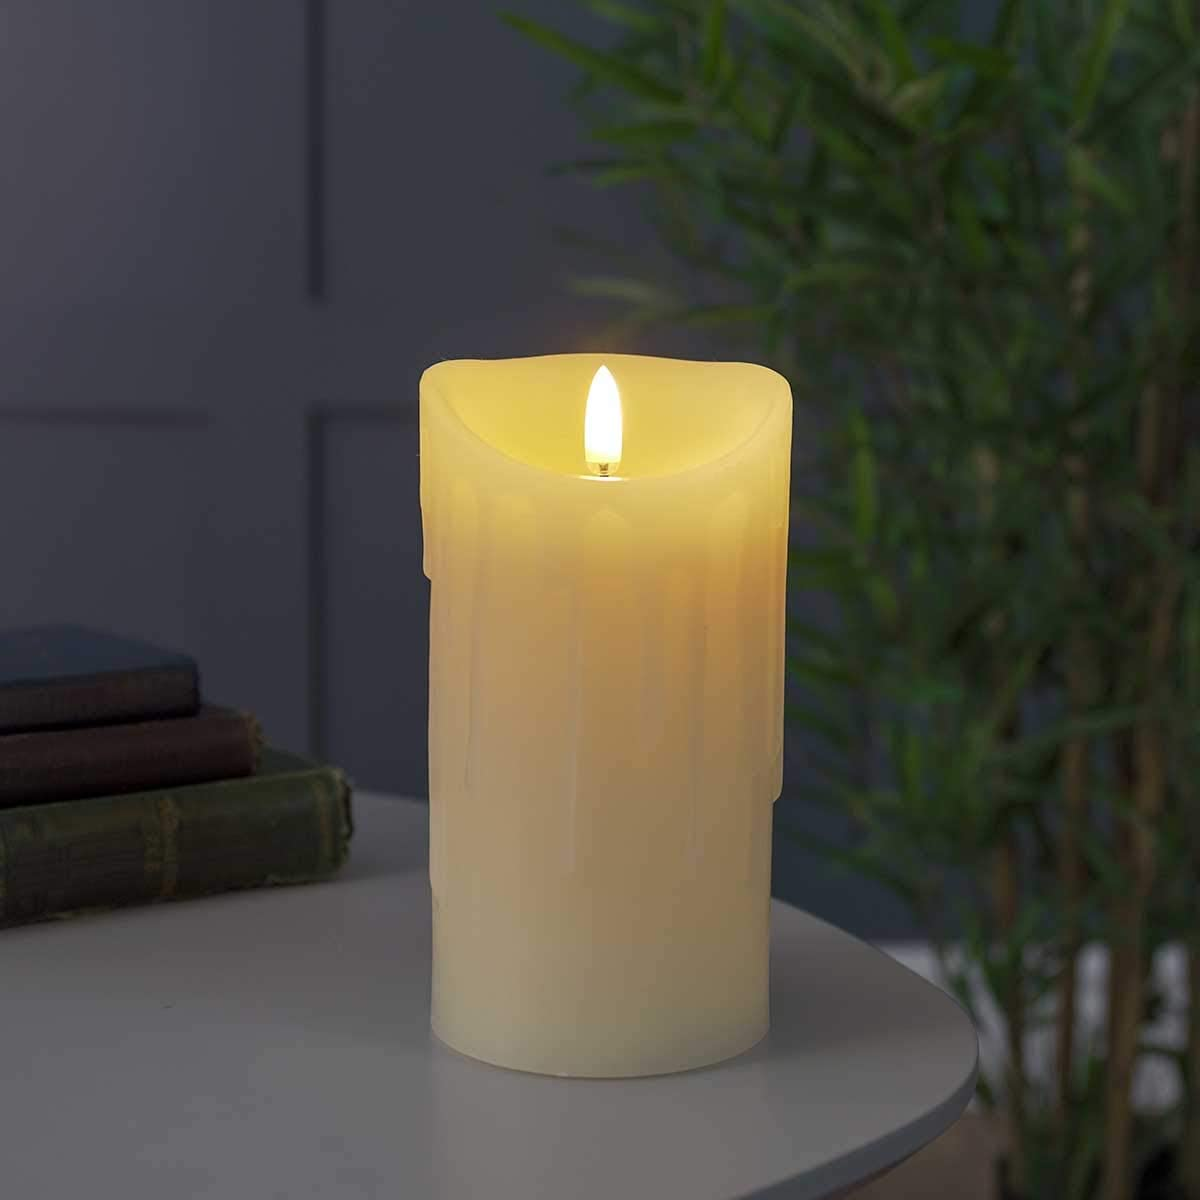 Indoor Dripping Wax Candle - Battery Powered - Authentic Flickering Flame Effect - Ivory - Timer Function (5.7